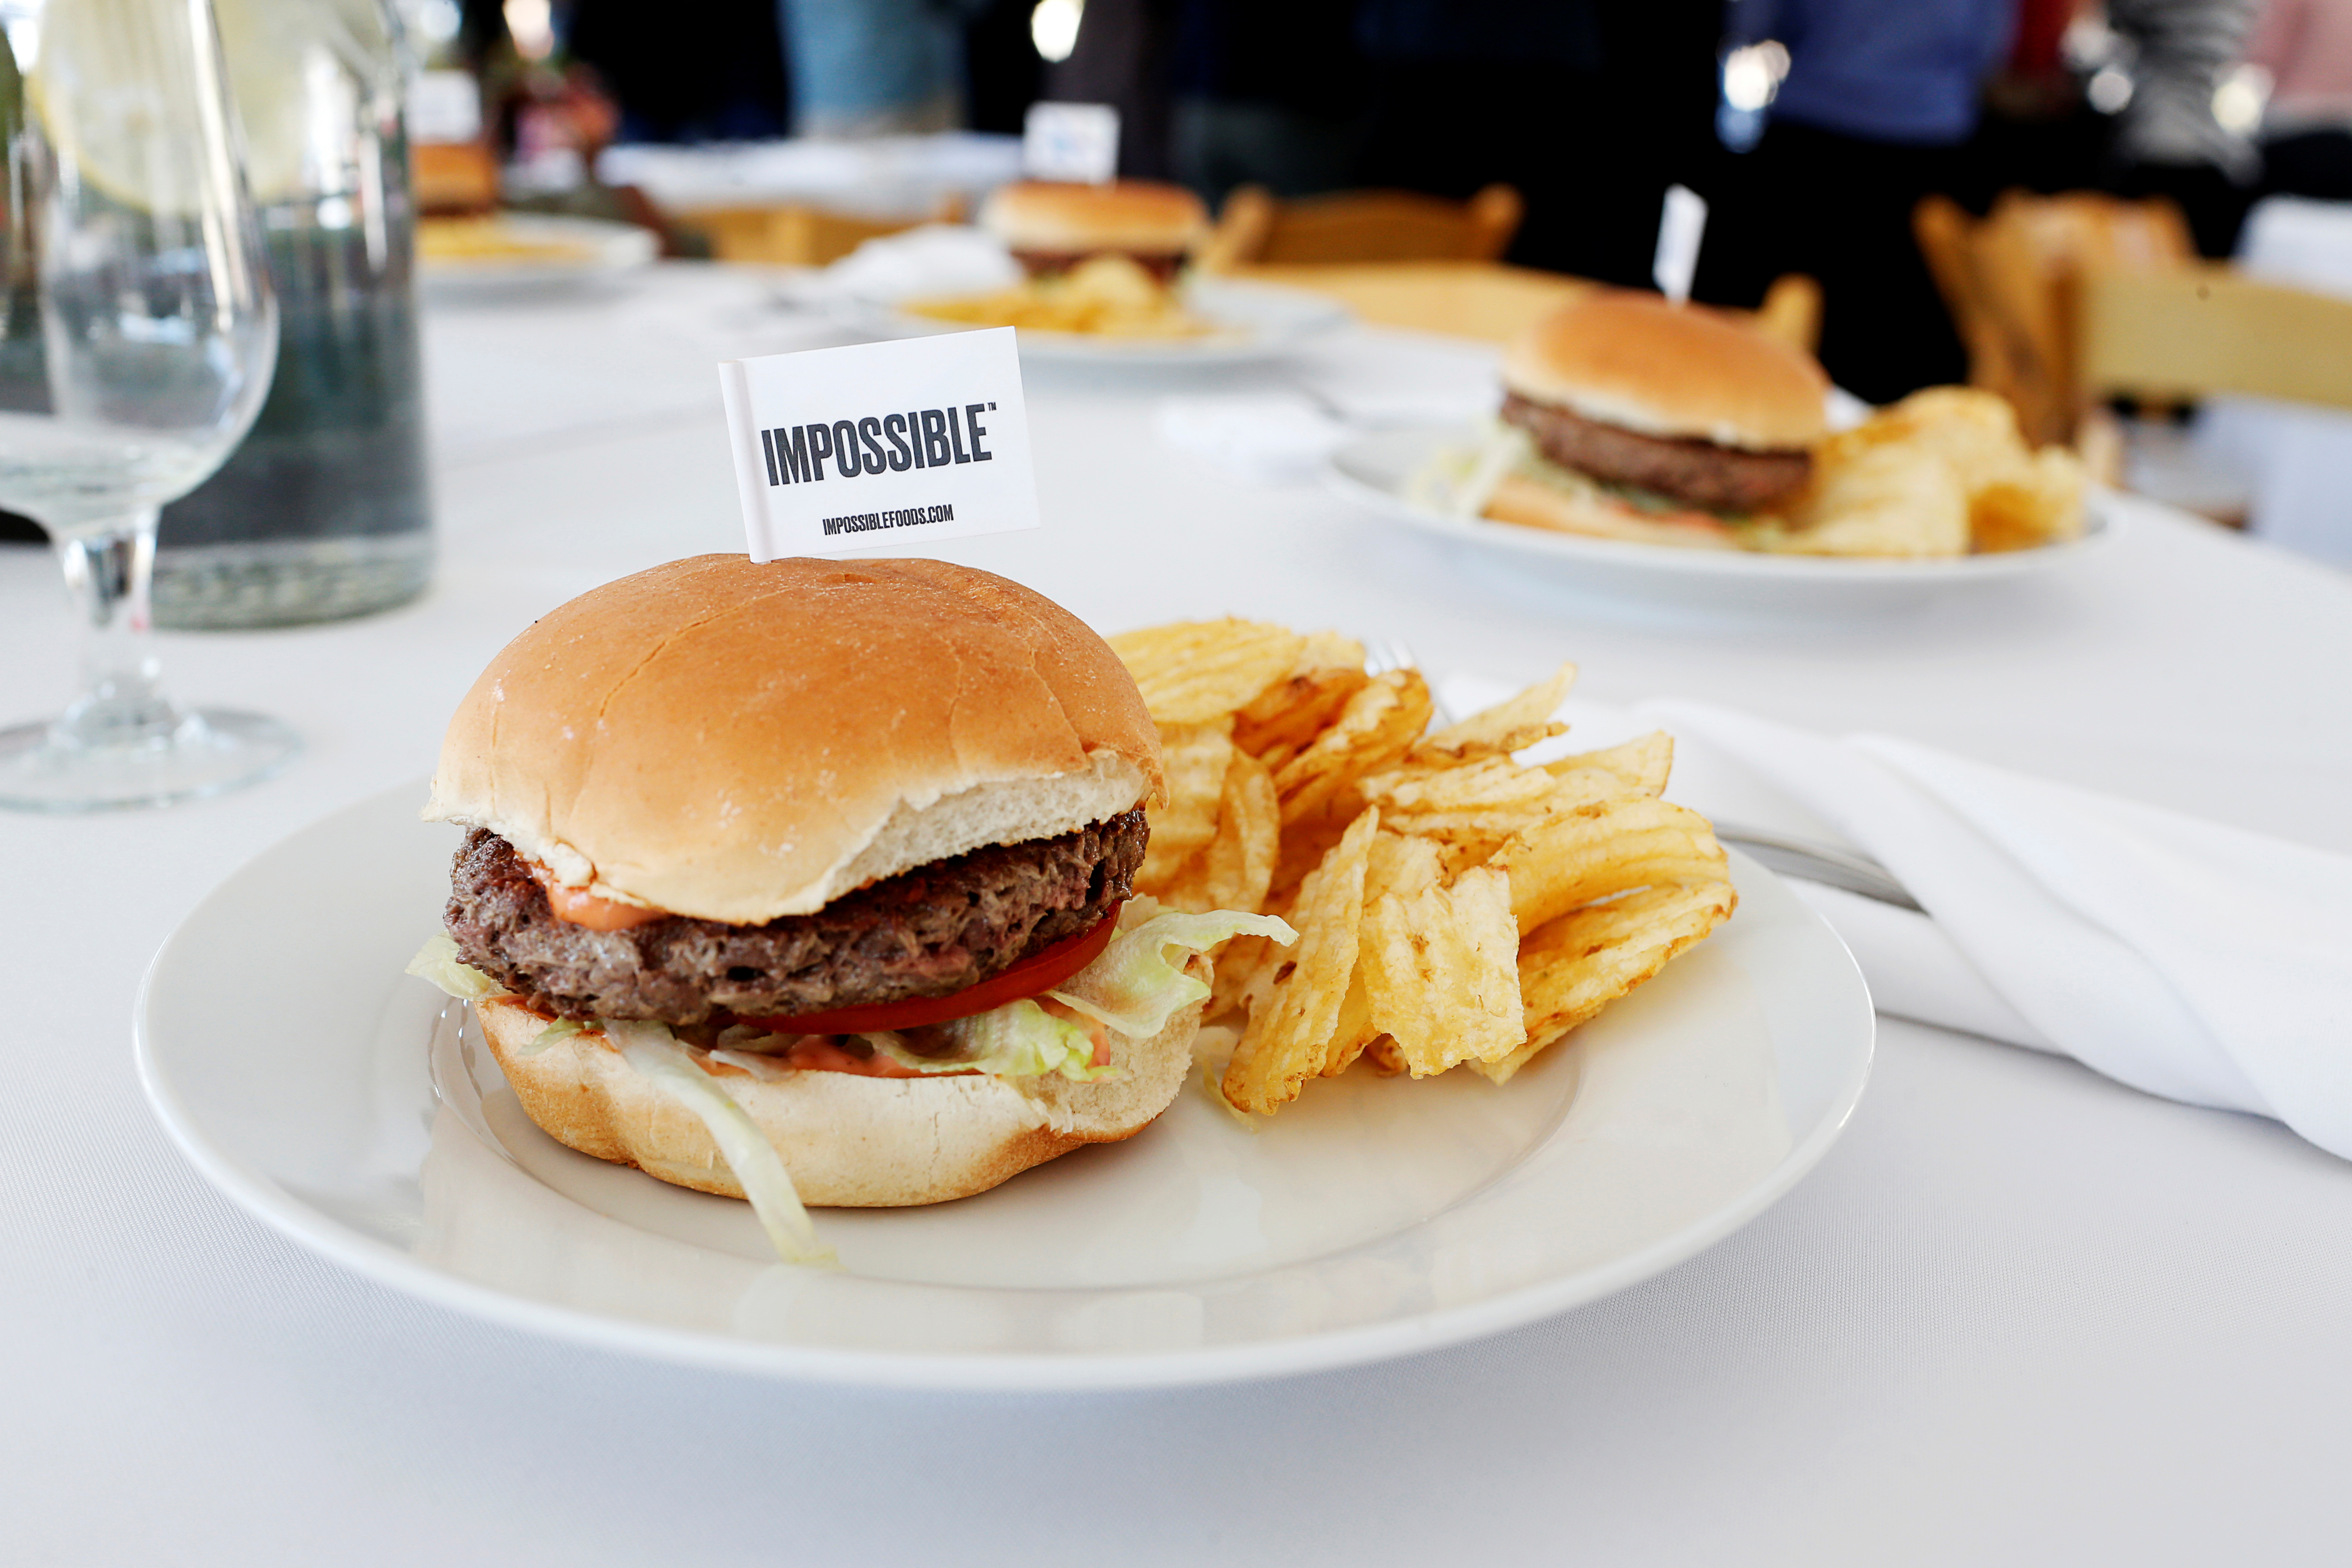 Dave & Buster's replaces Impossible burgers with new plant-based product